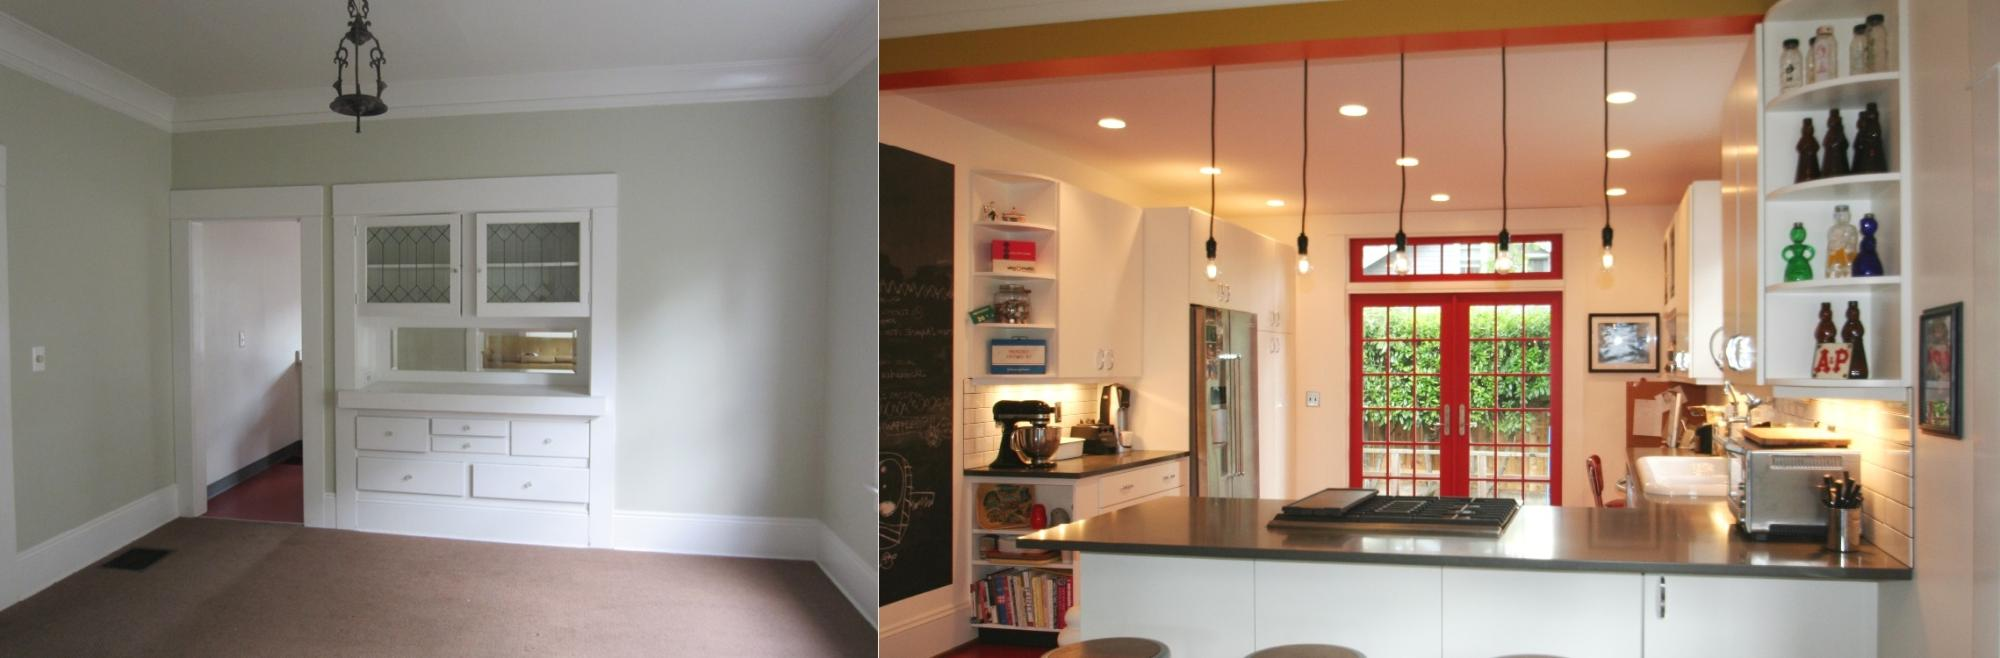 before___after_kitchen_1.jpg